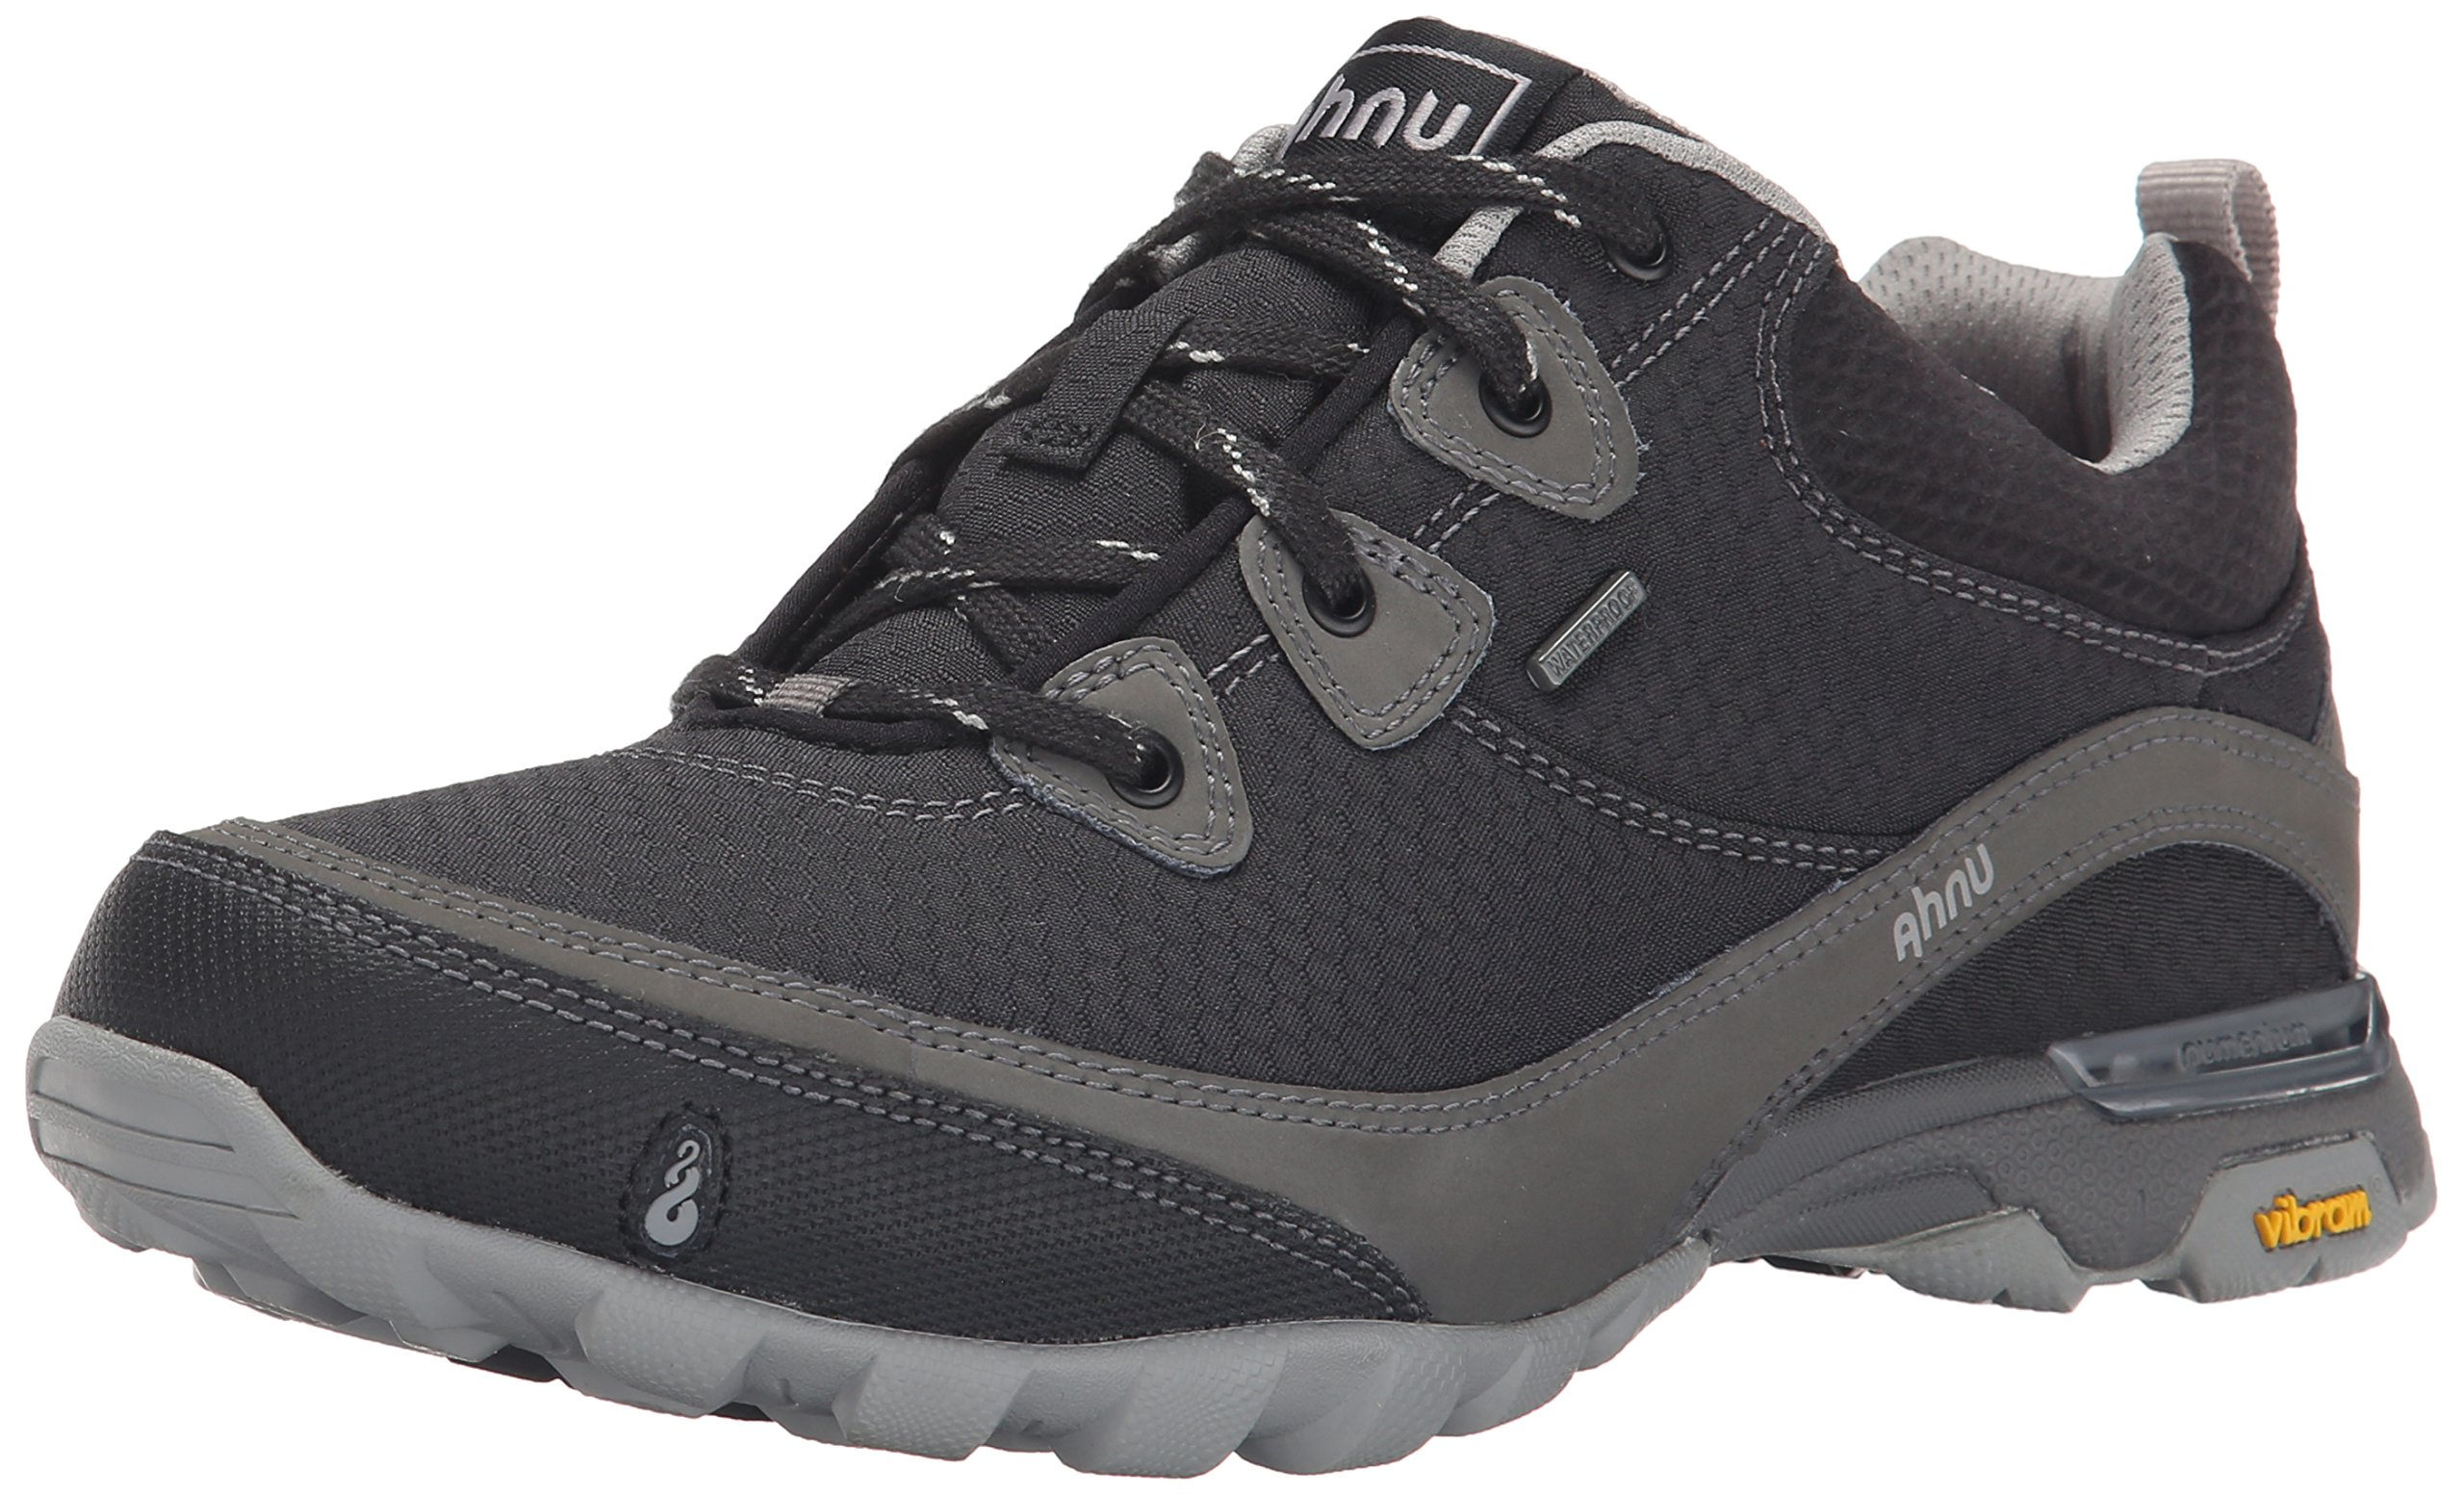 Ahnu Women's Sugarpine Waterproof Hiking Shoe, New Black, 6 M US